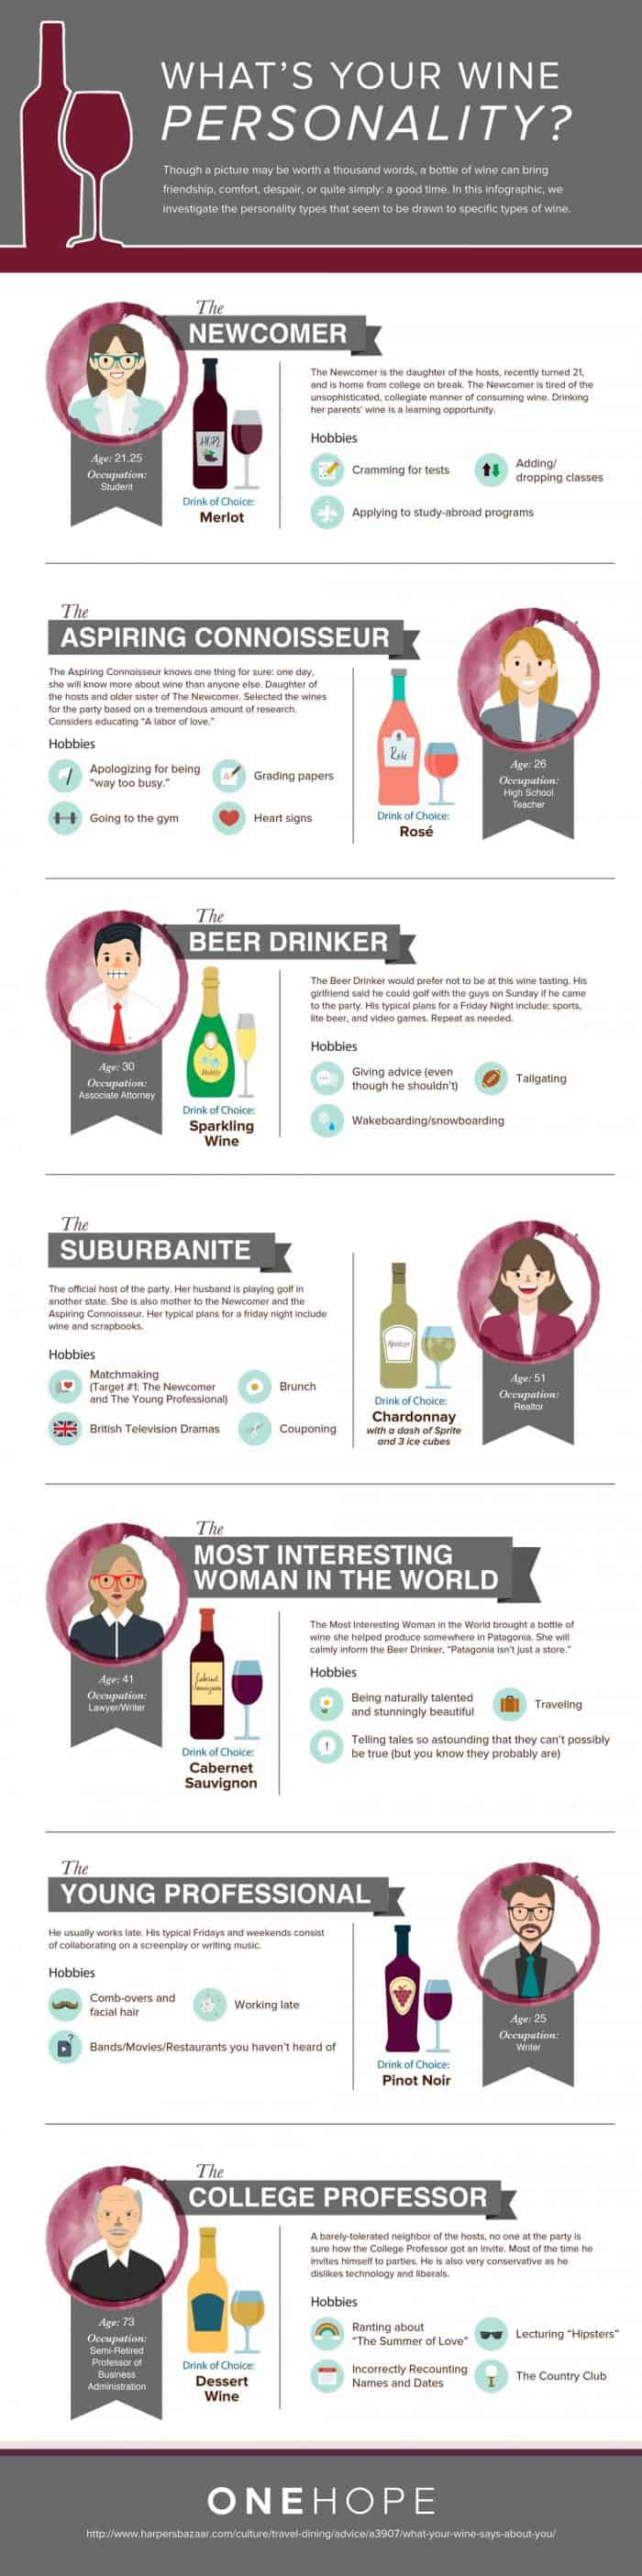 What's Your Wine Personality Infographic